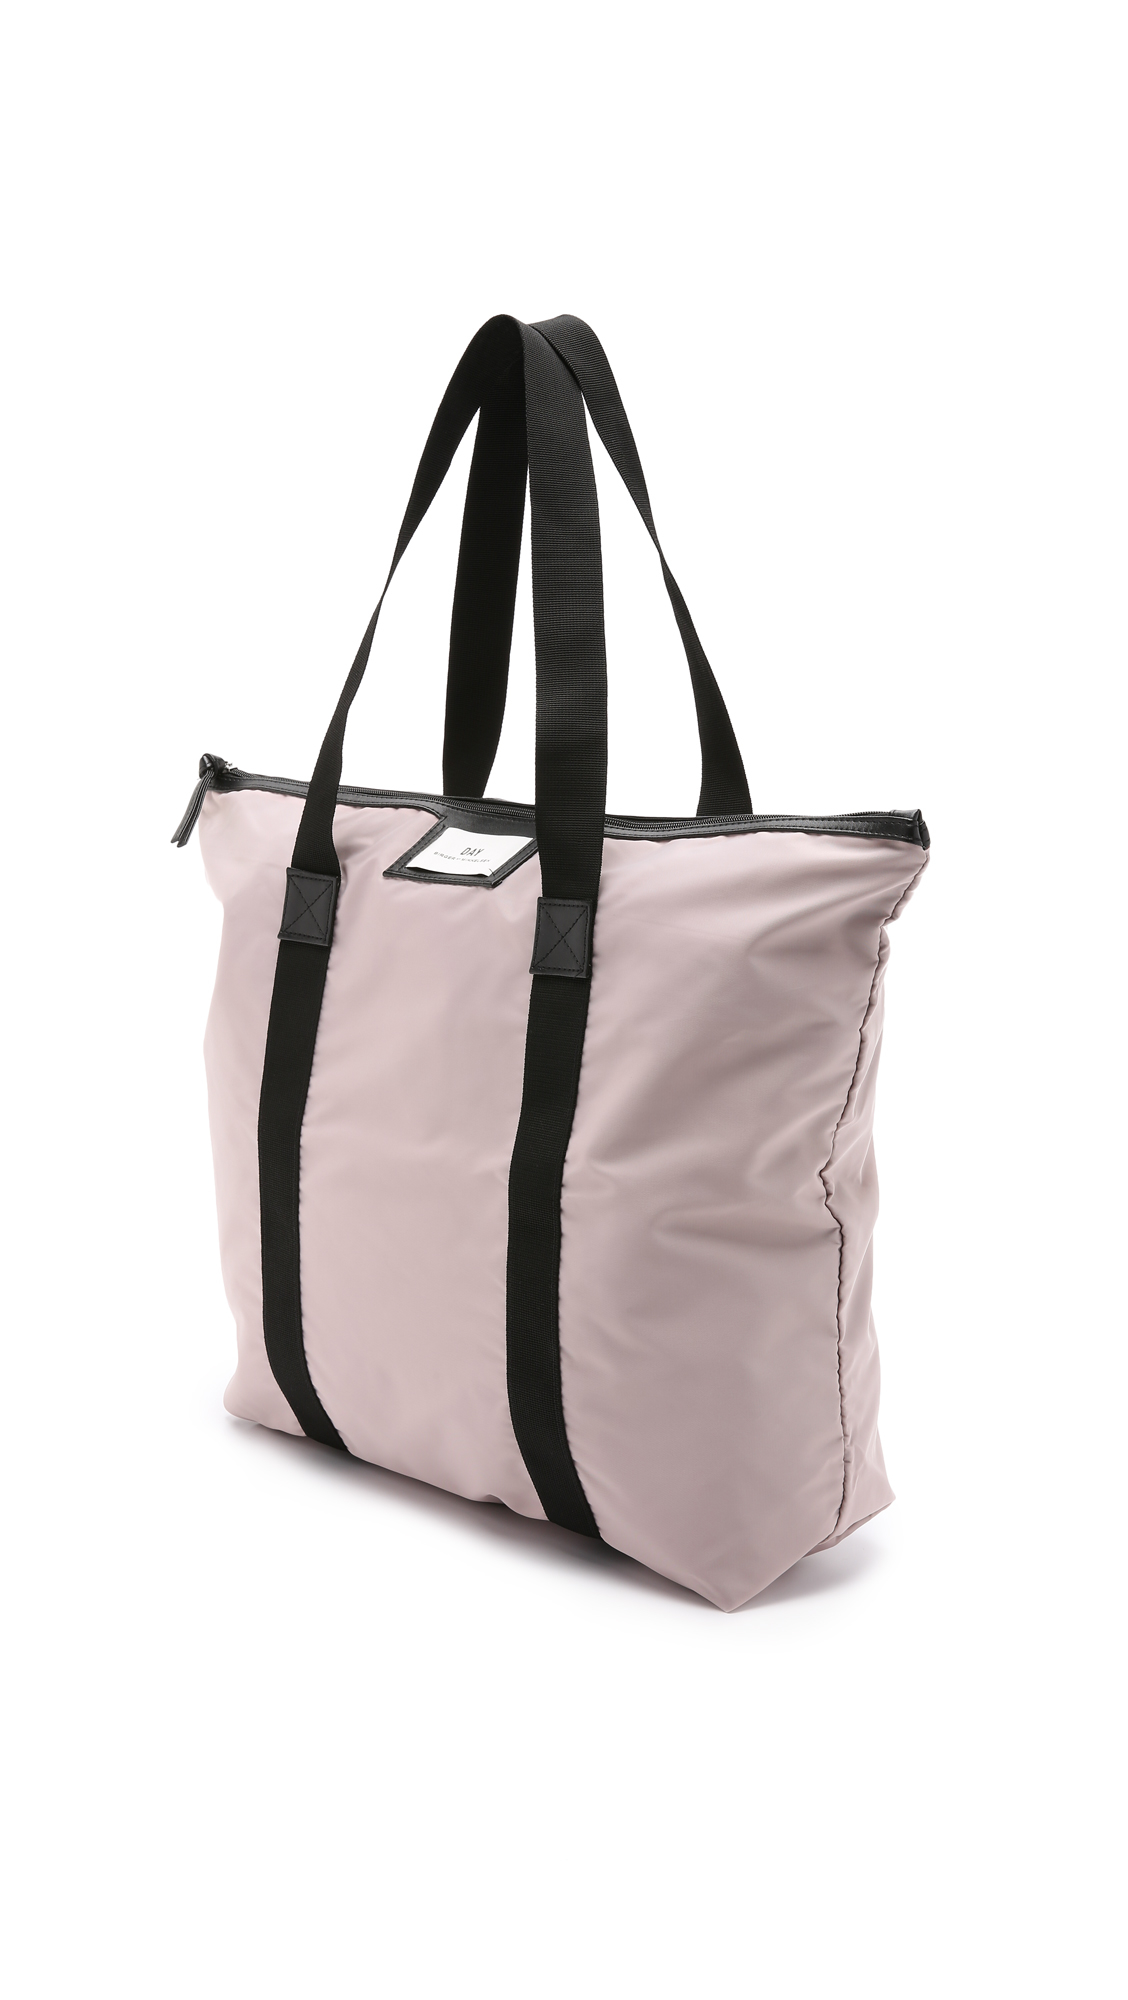 a06db6800c58 Day Birger et Mikkelsen Day Gweneth Tote - Cloud Grey in Gray - Lyst